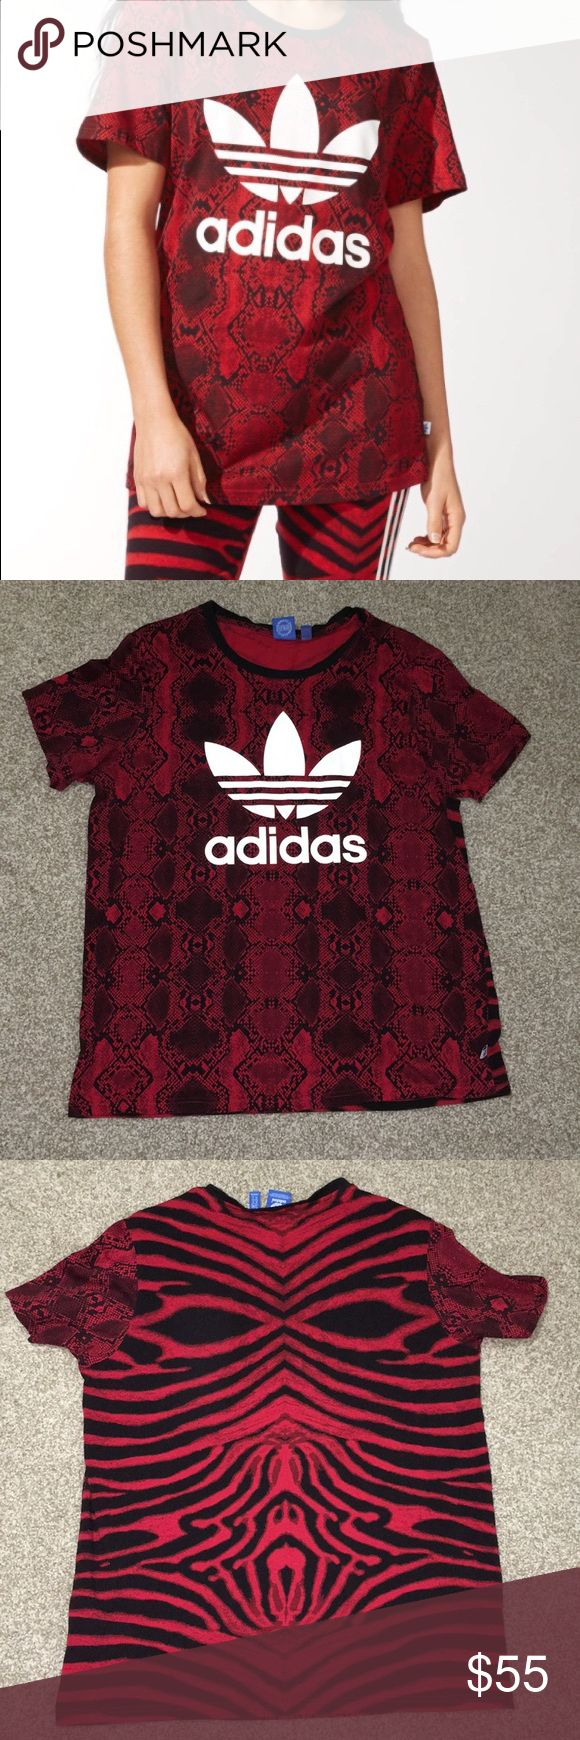 Adidas Red Clash Animal Print 2pc Set for Women Good Condition  Includes Shirt & Leggings / Both are a size Large adidas Tops Tees - Short Sleeve